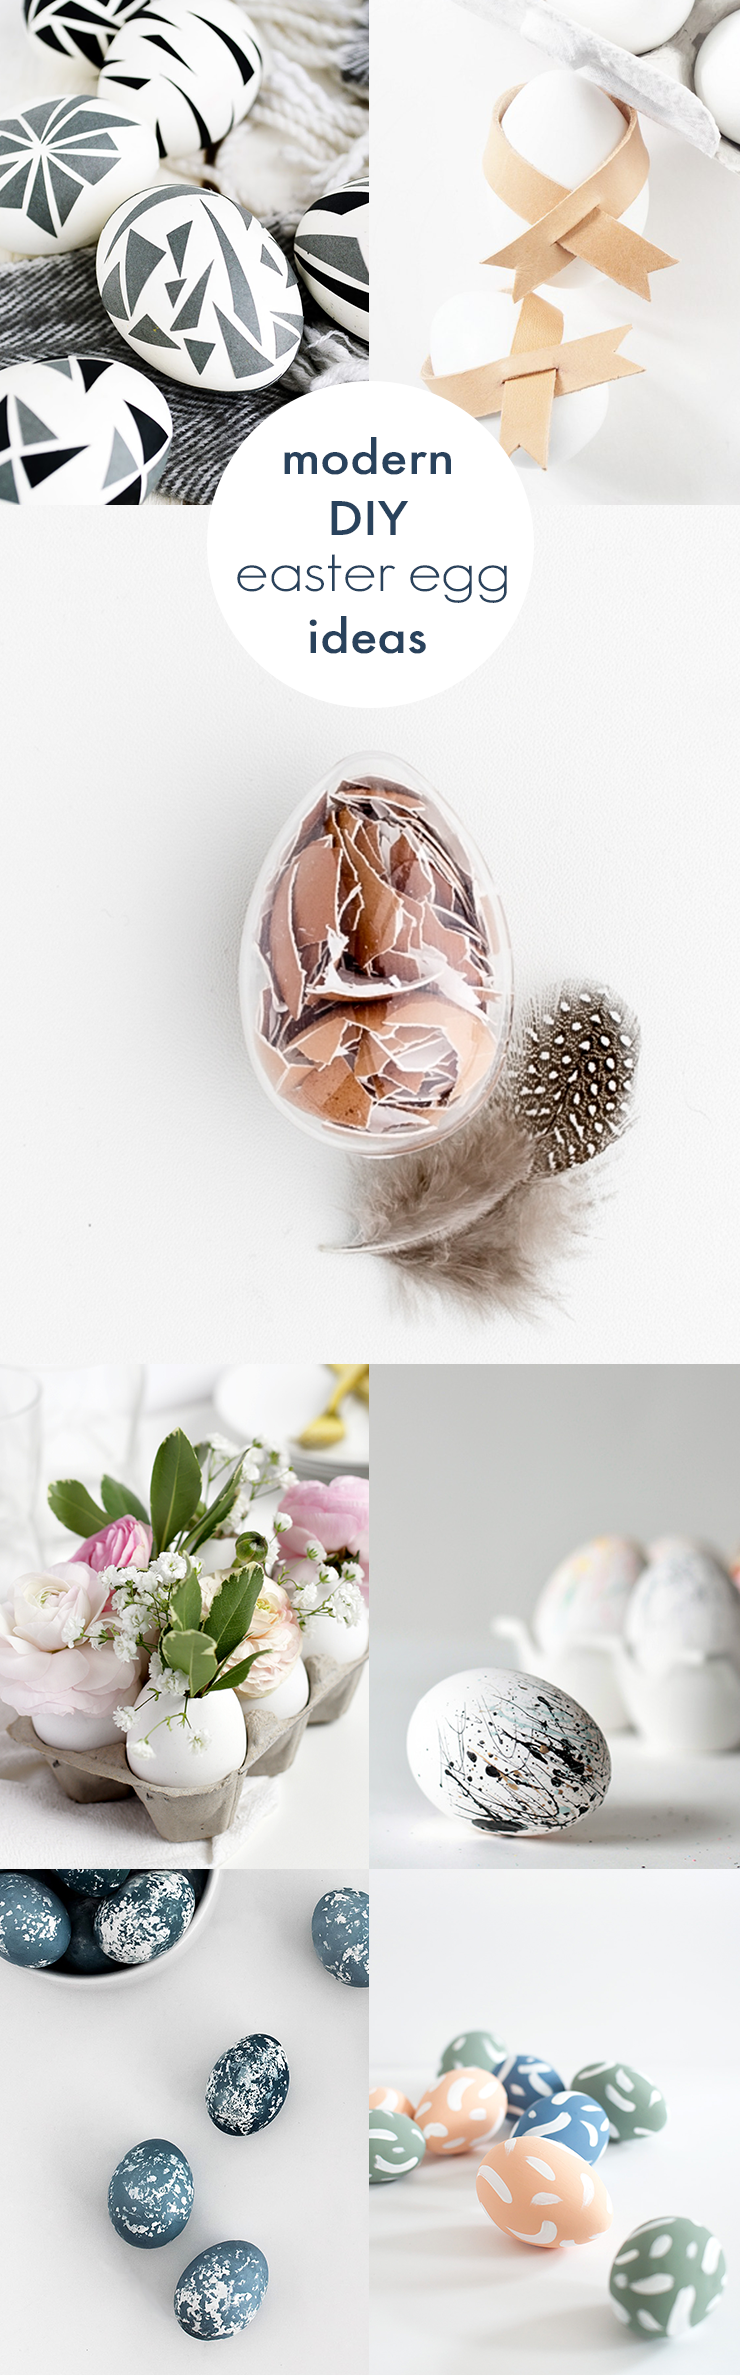 You'll love these sweet and simple modern DIY Easter egg ideas. Click through for more!